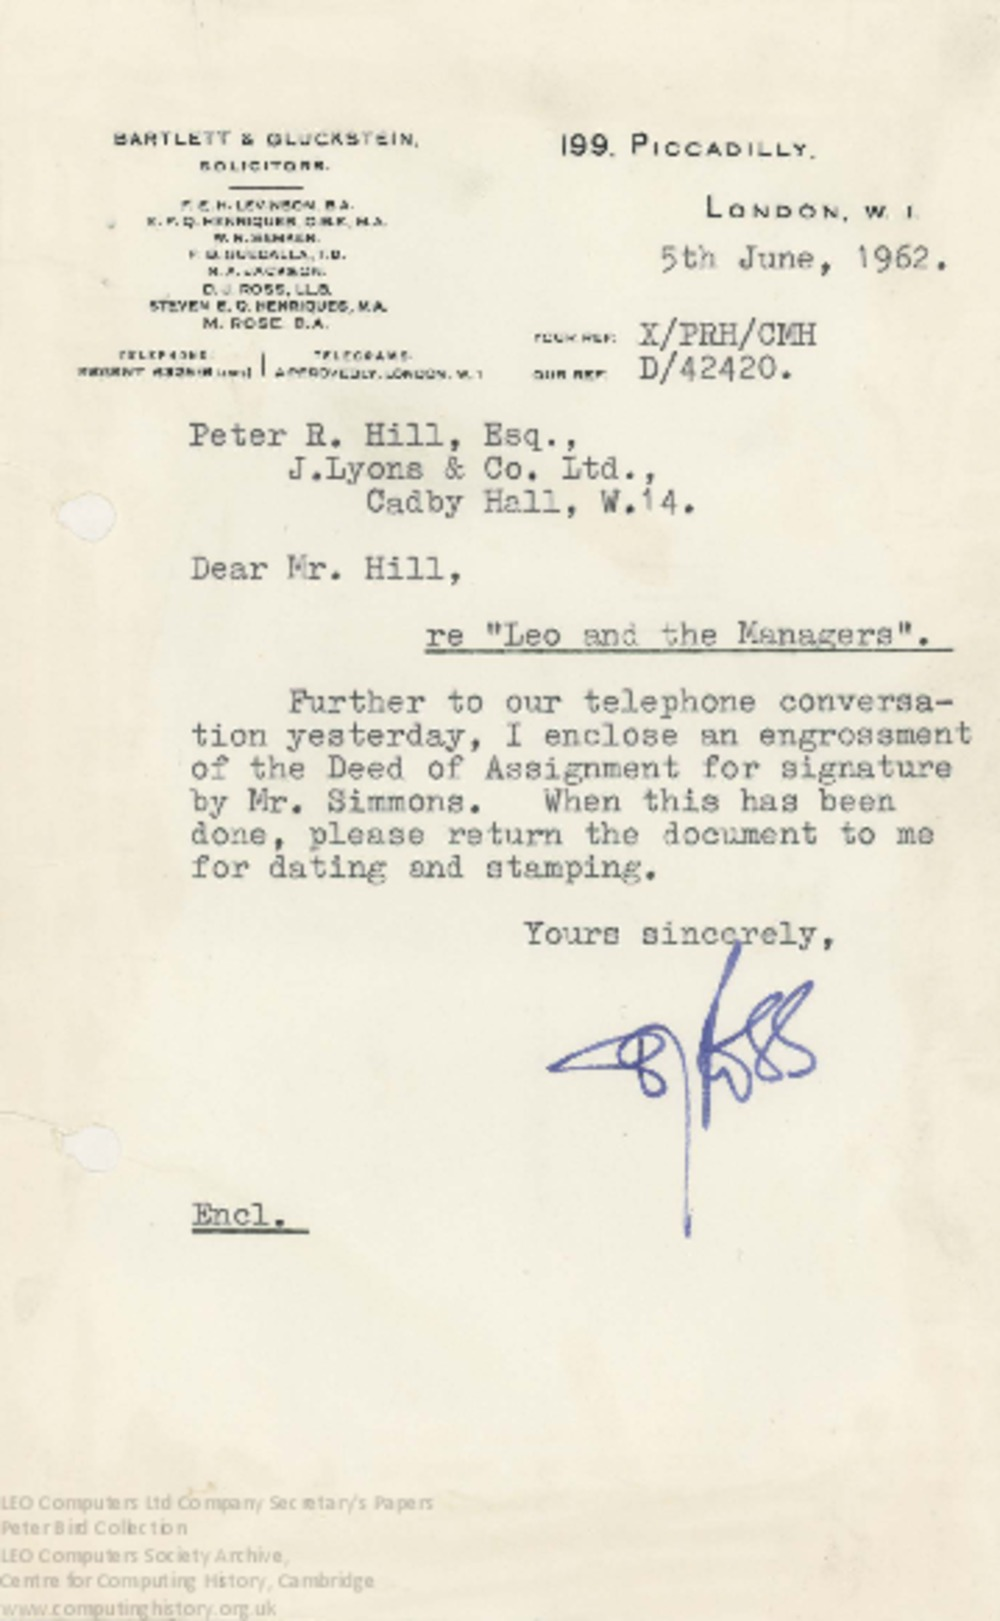 Article: 62864 LEO and the Managers assignment of rights, 5th June 1962